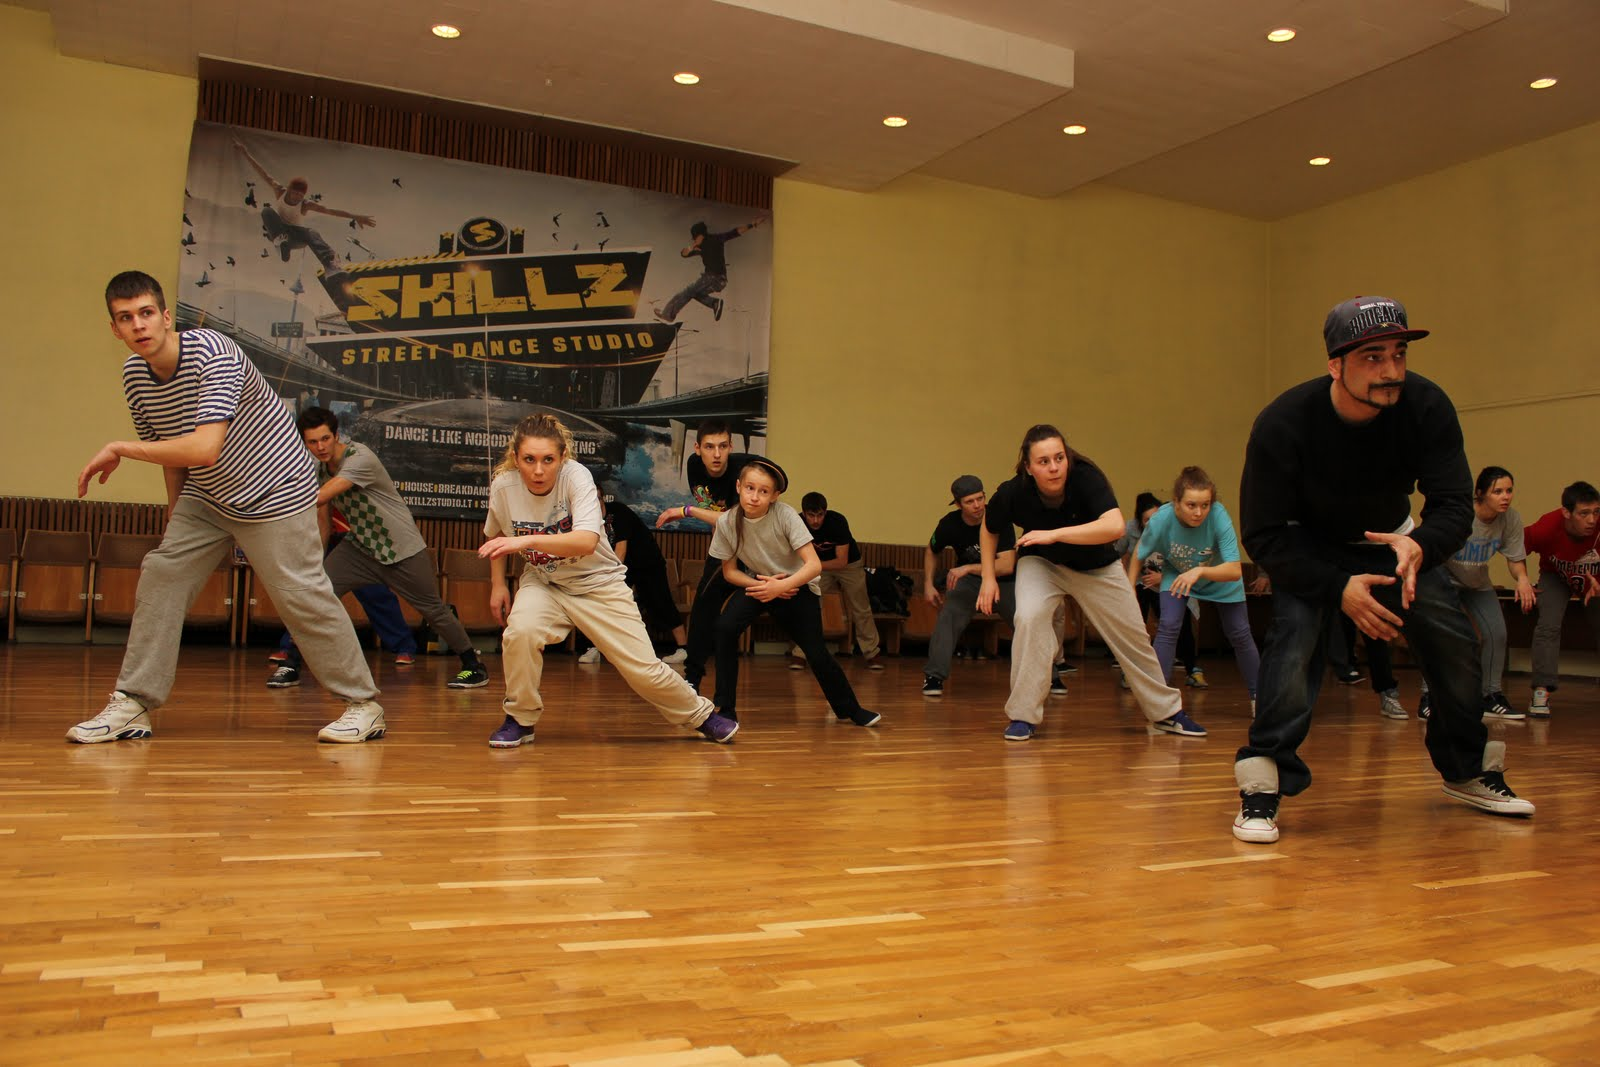 Mr Wiggles USA Hip-Hop Popping workshop - IMG_2403.jpg